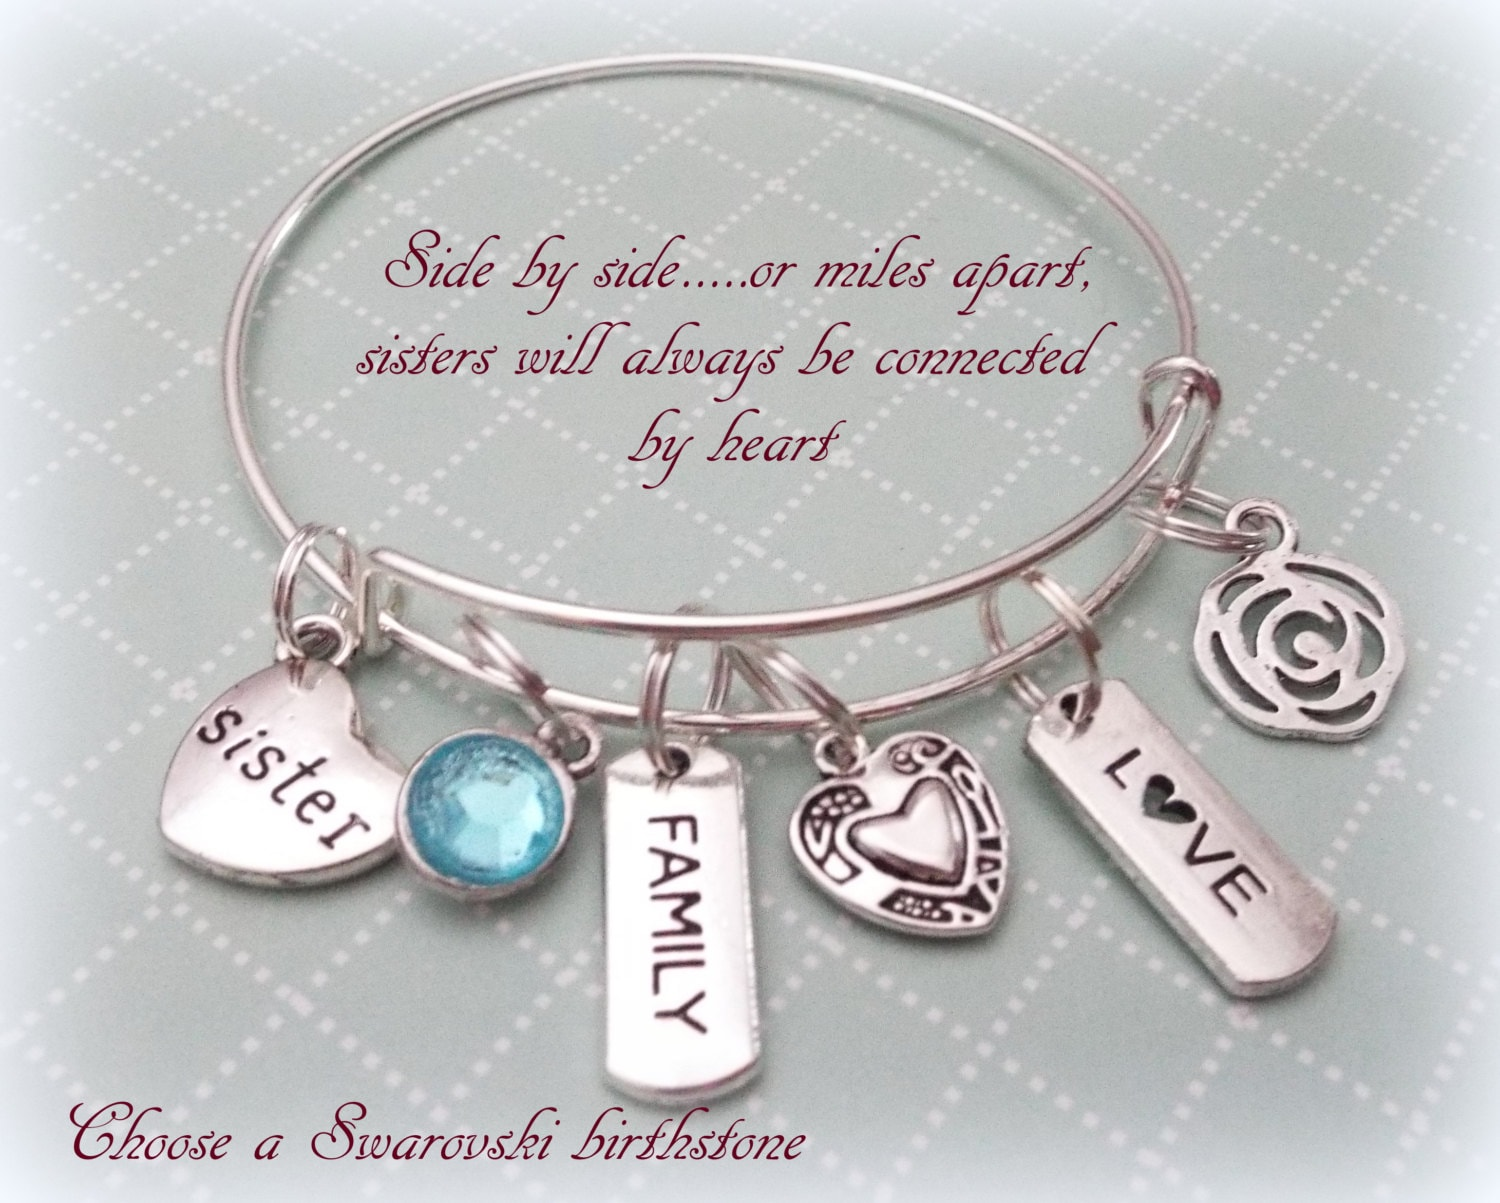 ... Sister to Sister Gift. gallery photo ...  sc 1 st  HopeisHipJewelry & Gift for Sister Sister Gift Ideas Sister Charm Bracelet Personalized ...